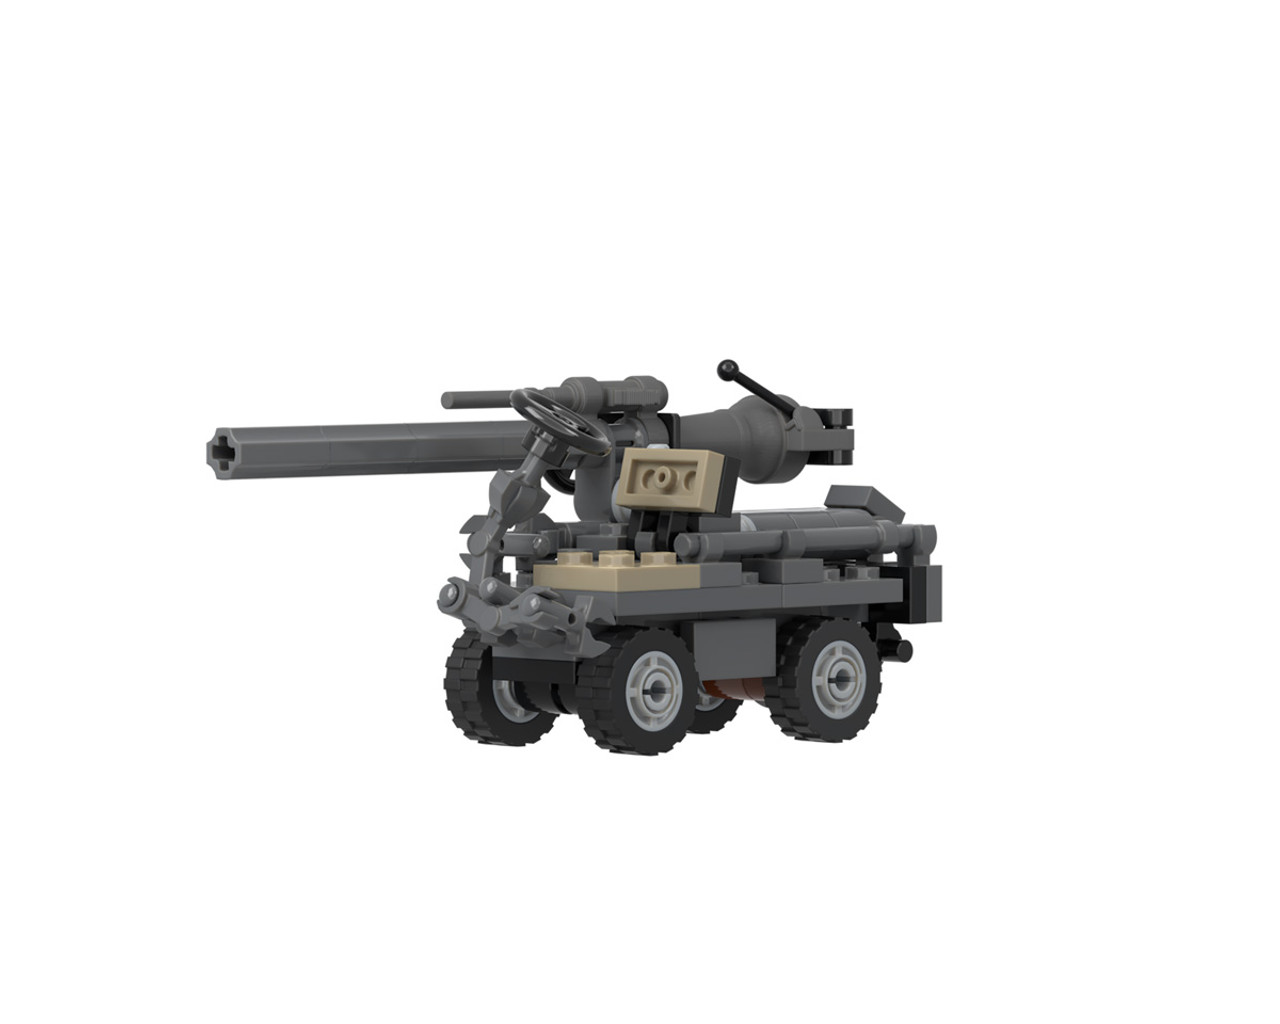 M274 Mule - 1/2 Ton Utility Truck with M40 Recoilless Rifle